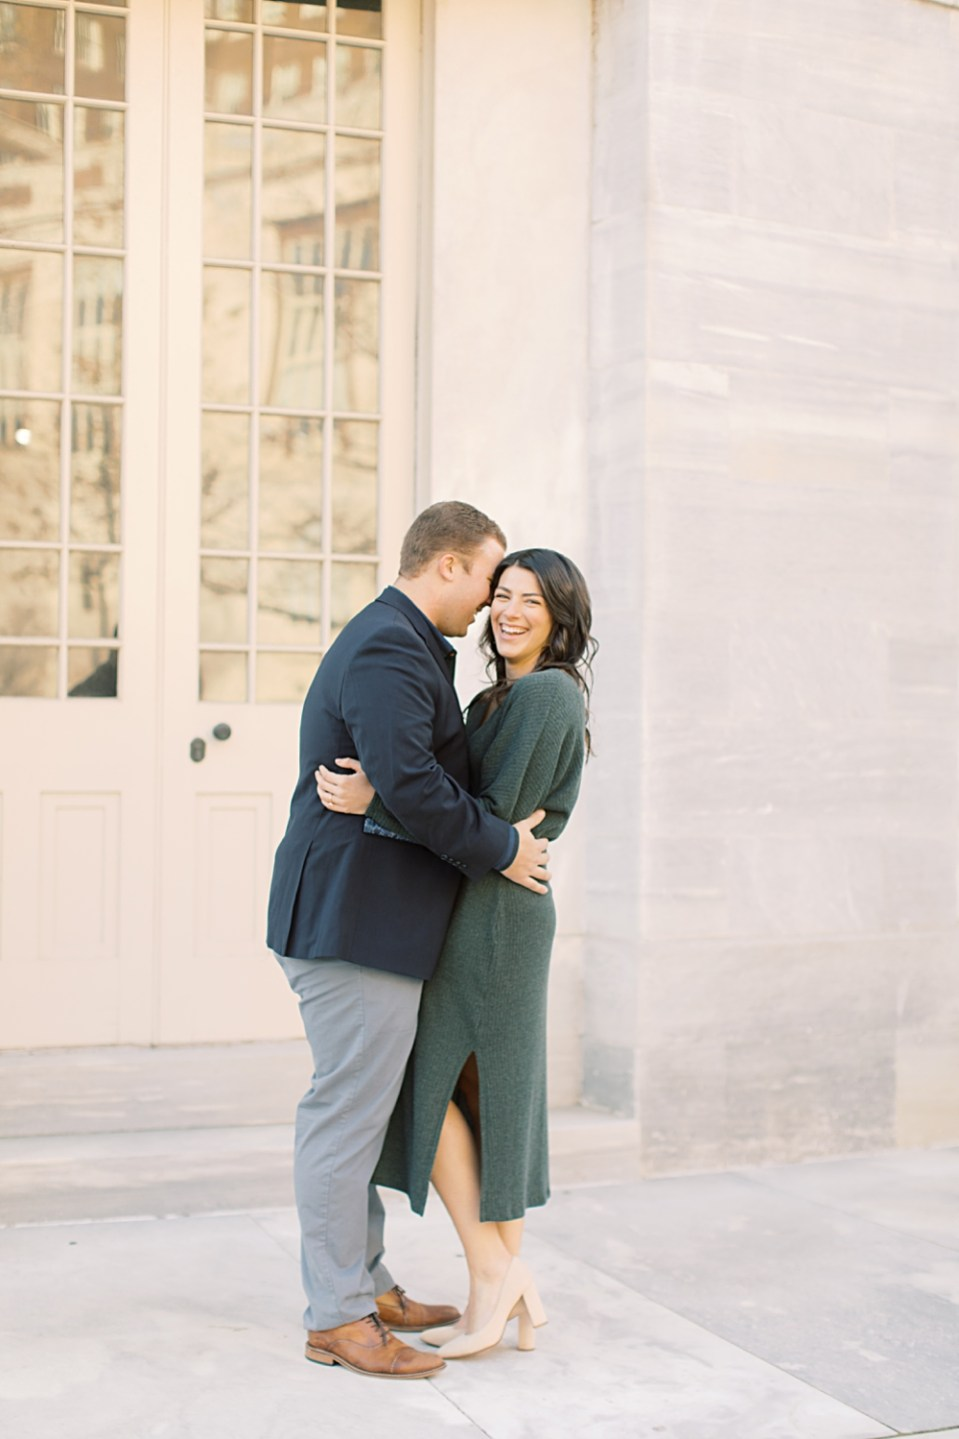 Engagement Session in Old City | Philadelphia wedding photographer Sarah Canning